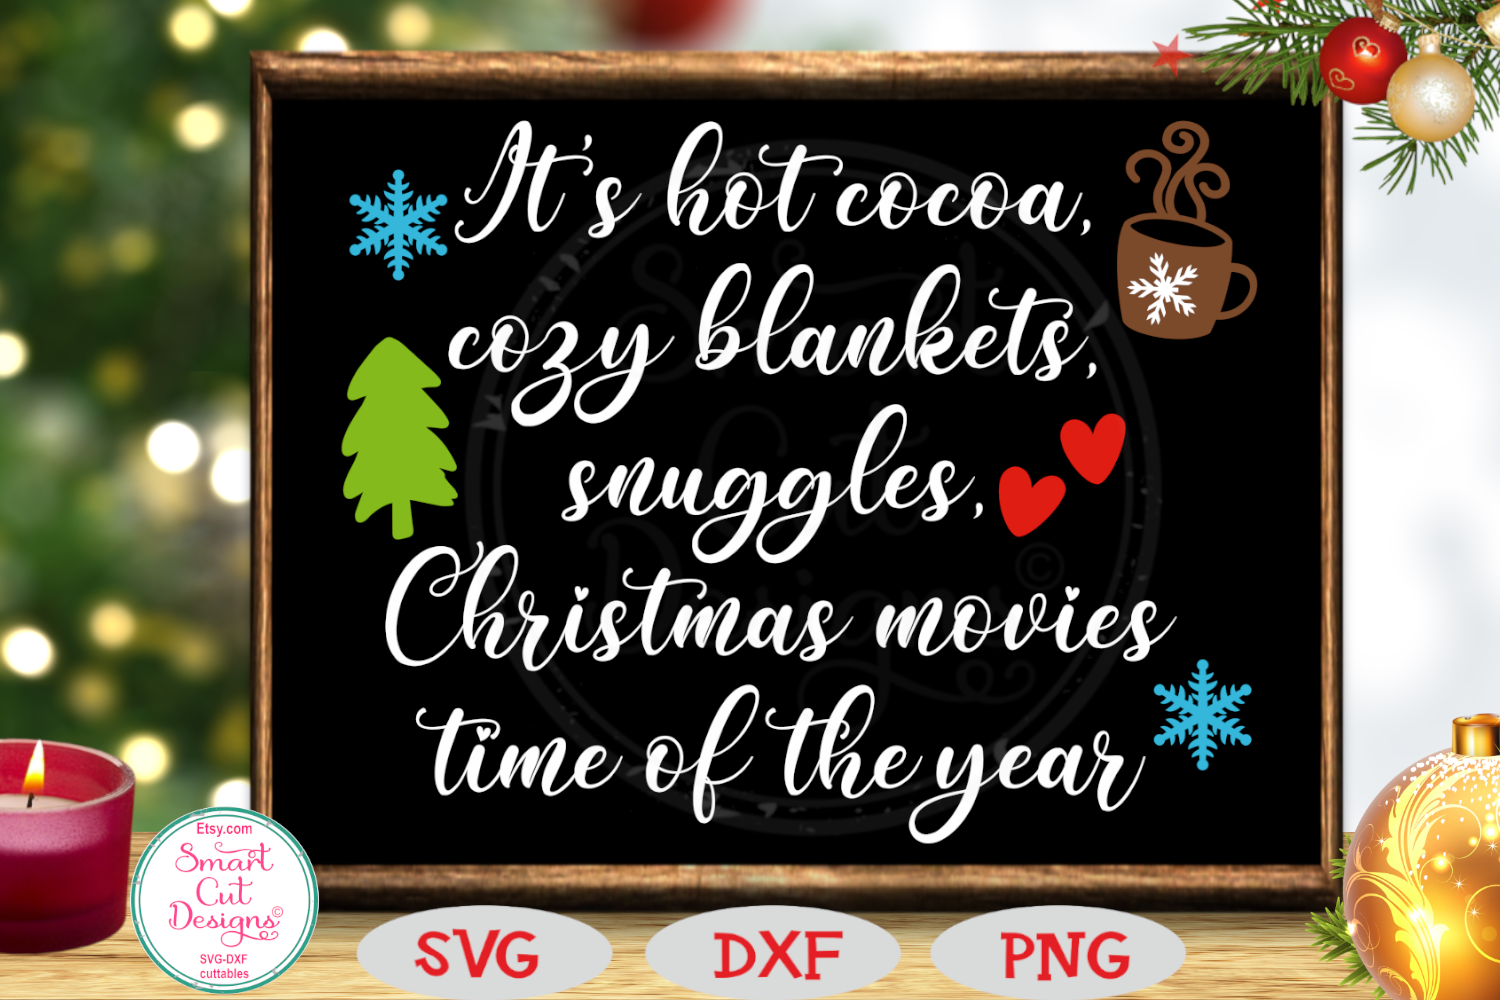 It's Hot Cocoa, Cozy Blankets SVG, Christmas, Farmhouse SVG example image 1